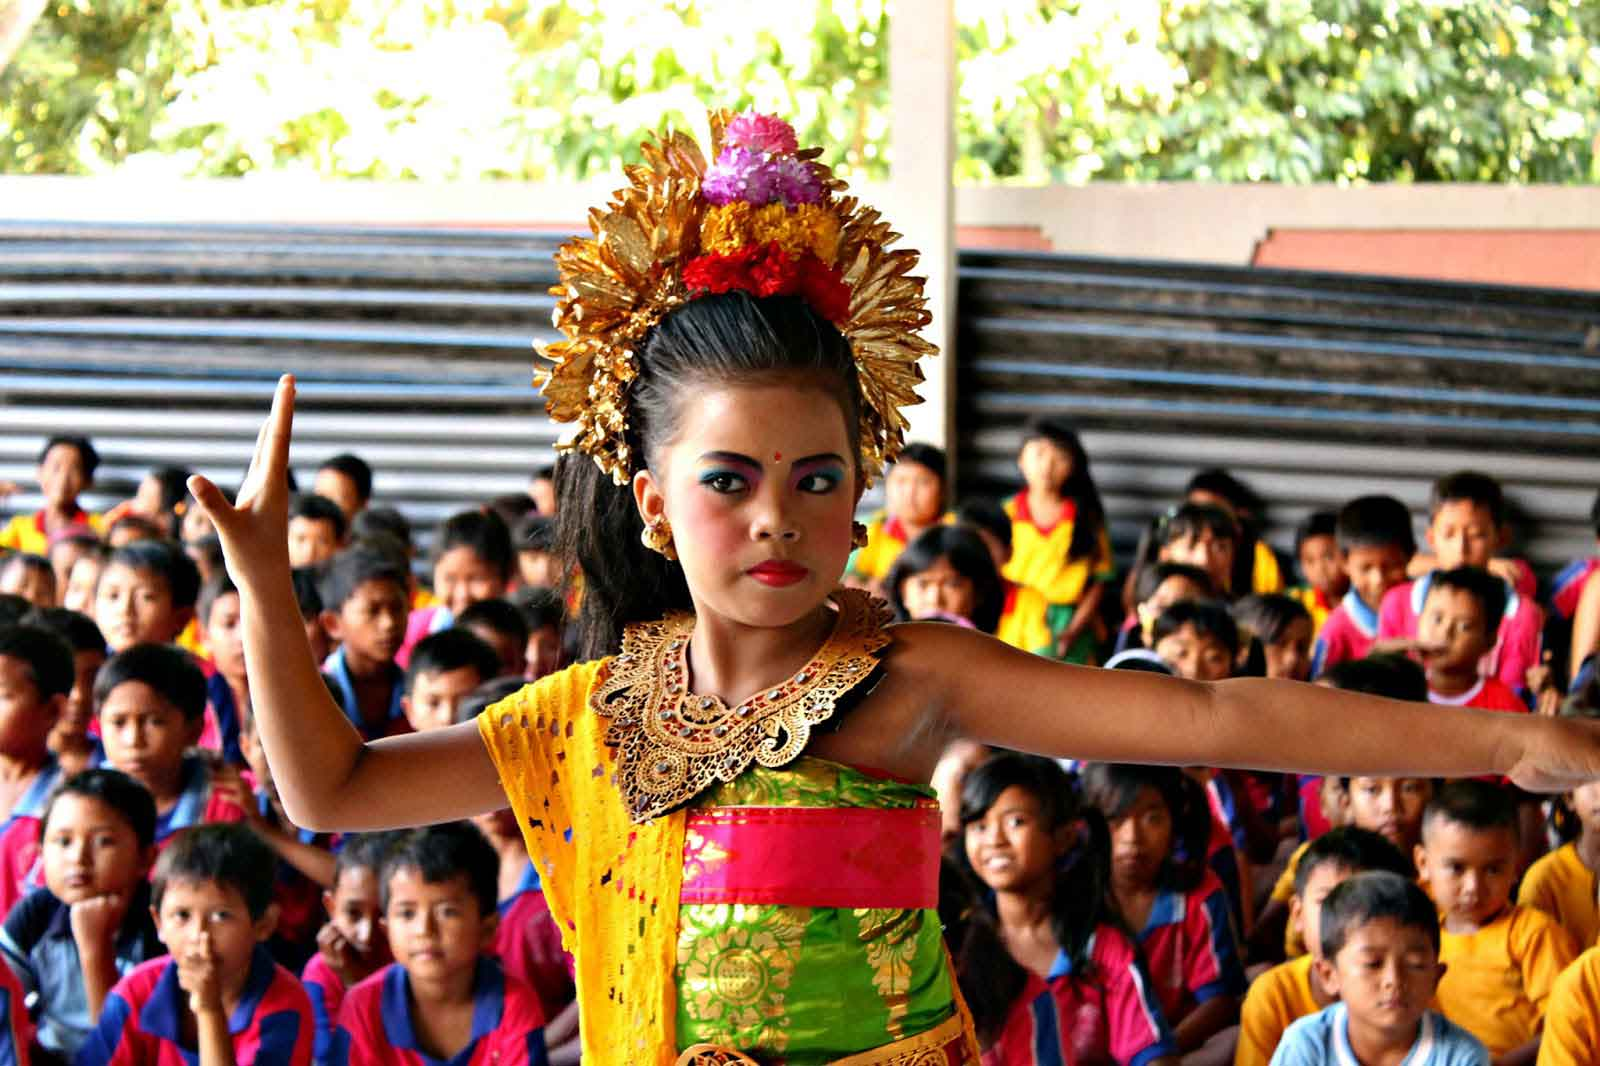 danse balinaise spectacle enfants indonesie panorama